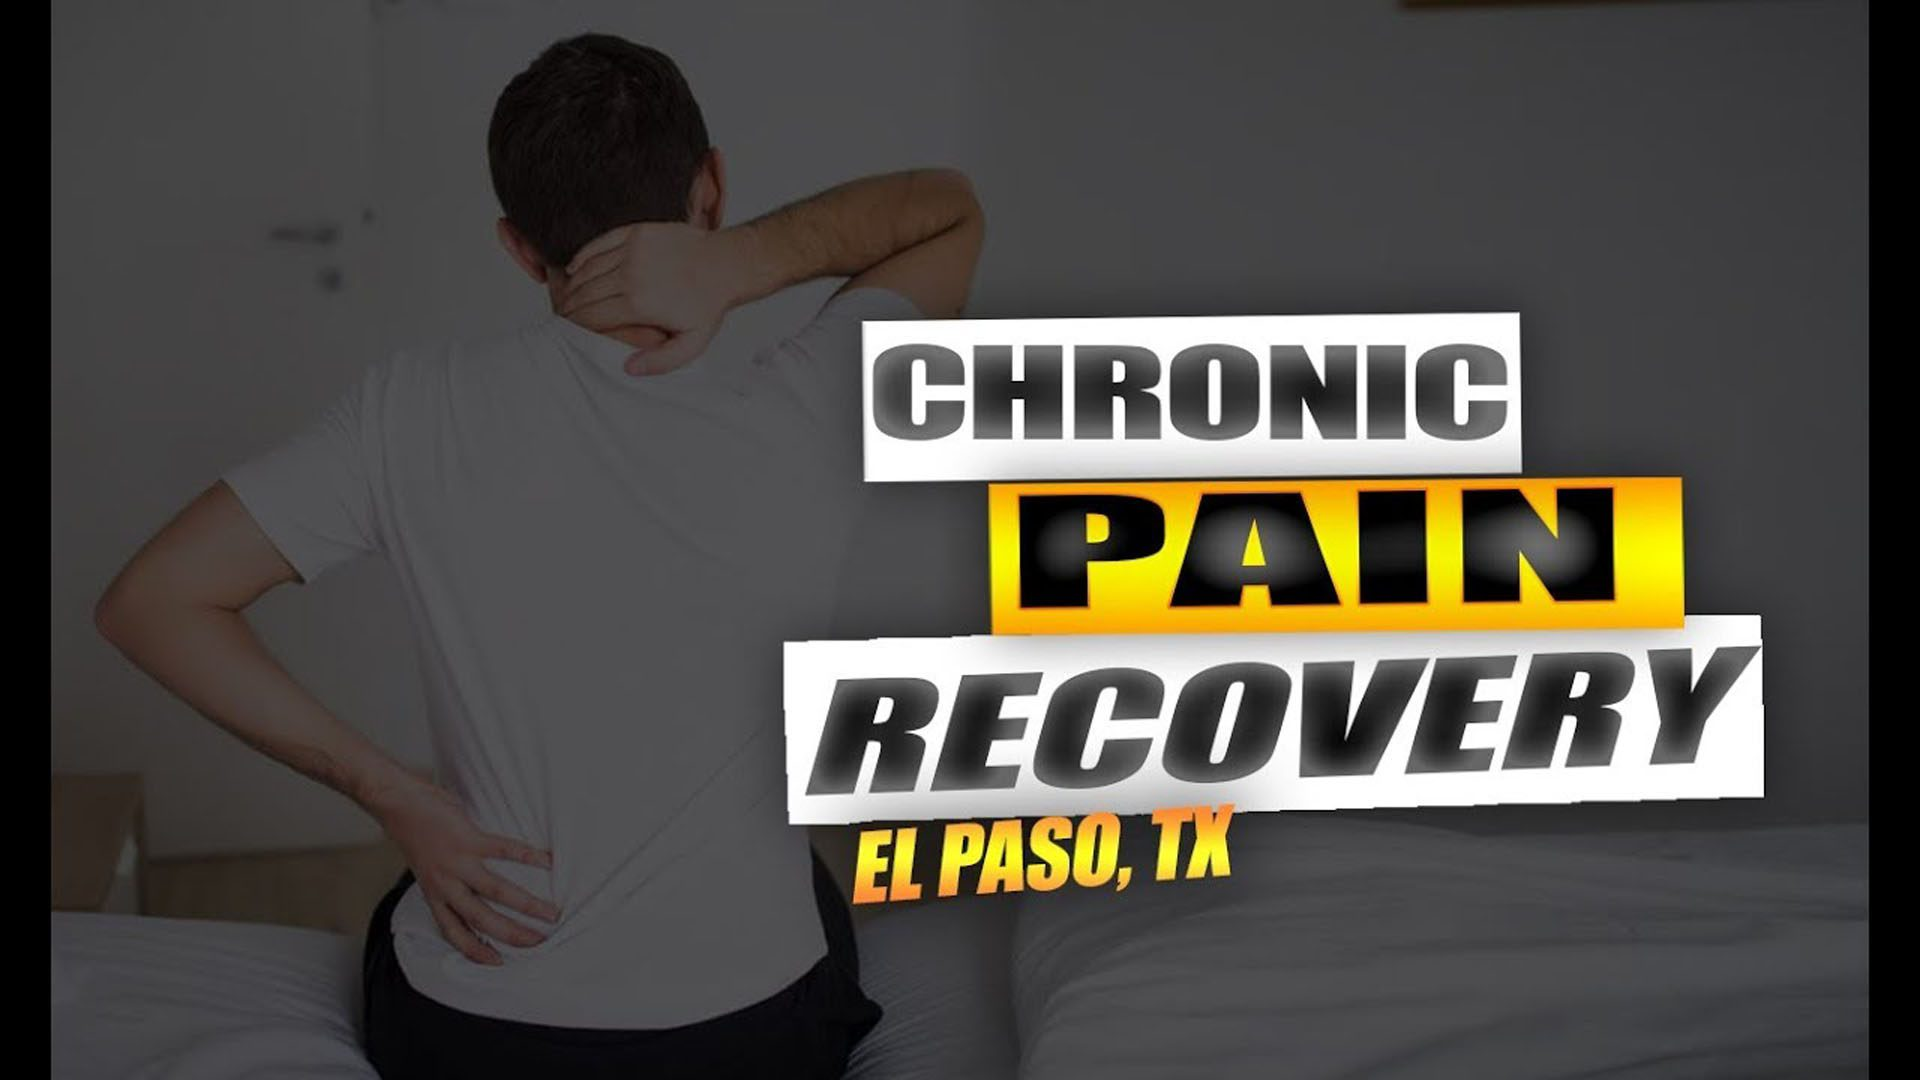 Chronic Pain Recovery | Video | El Paso, TX.